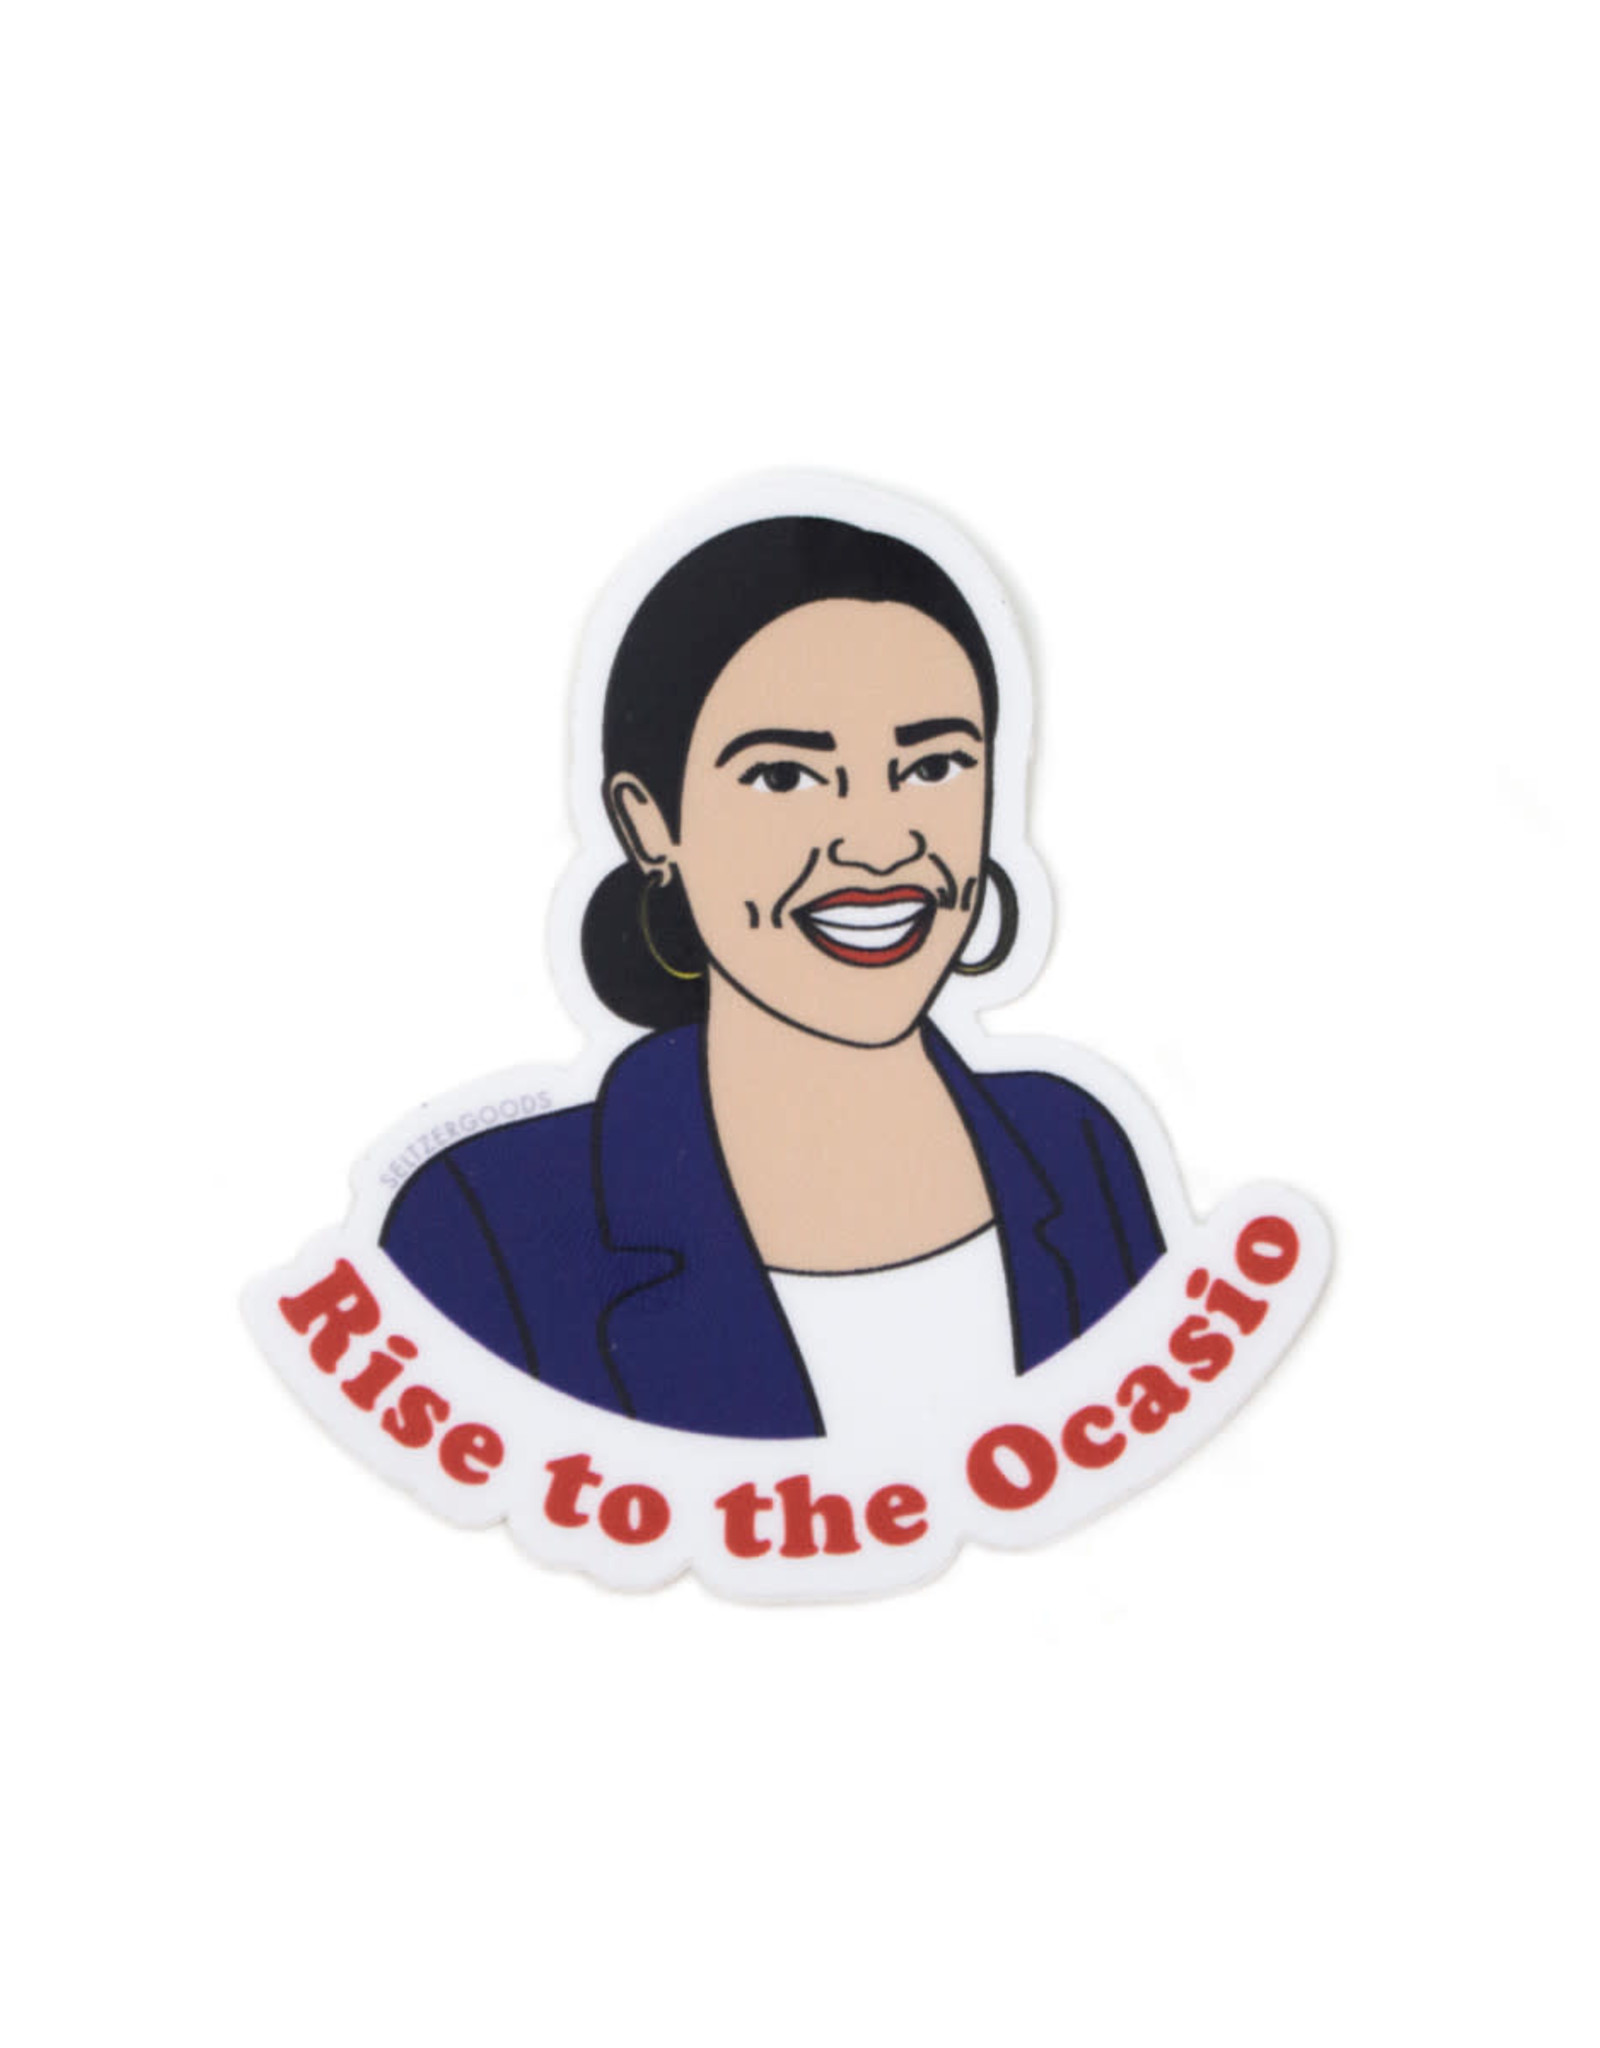 Seltzer Rise to the Ocasio AOC Sticker - Seltzer